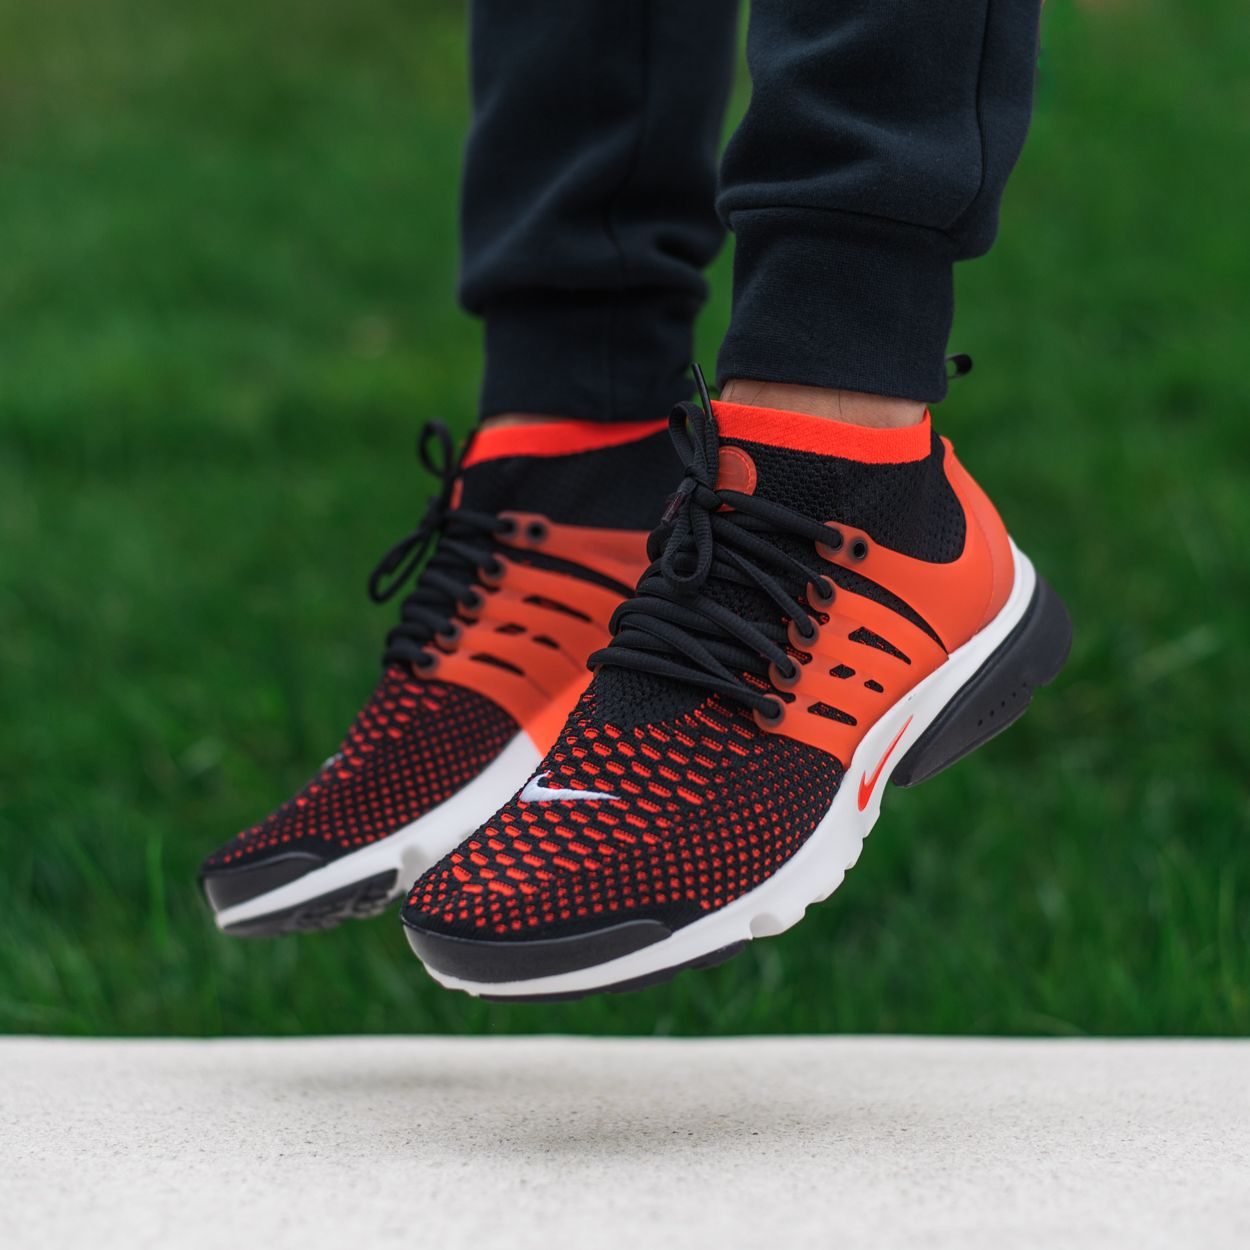 5e50d5666812 Here s How The Nike Air Presto Ultra Flyknit In Black Bright Crimson Looks  Like On-Feet